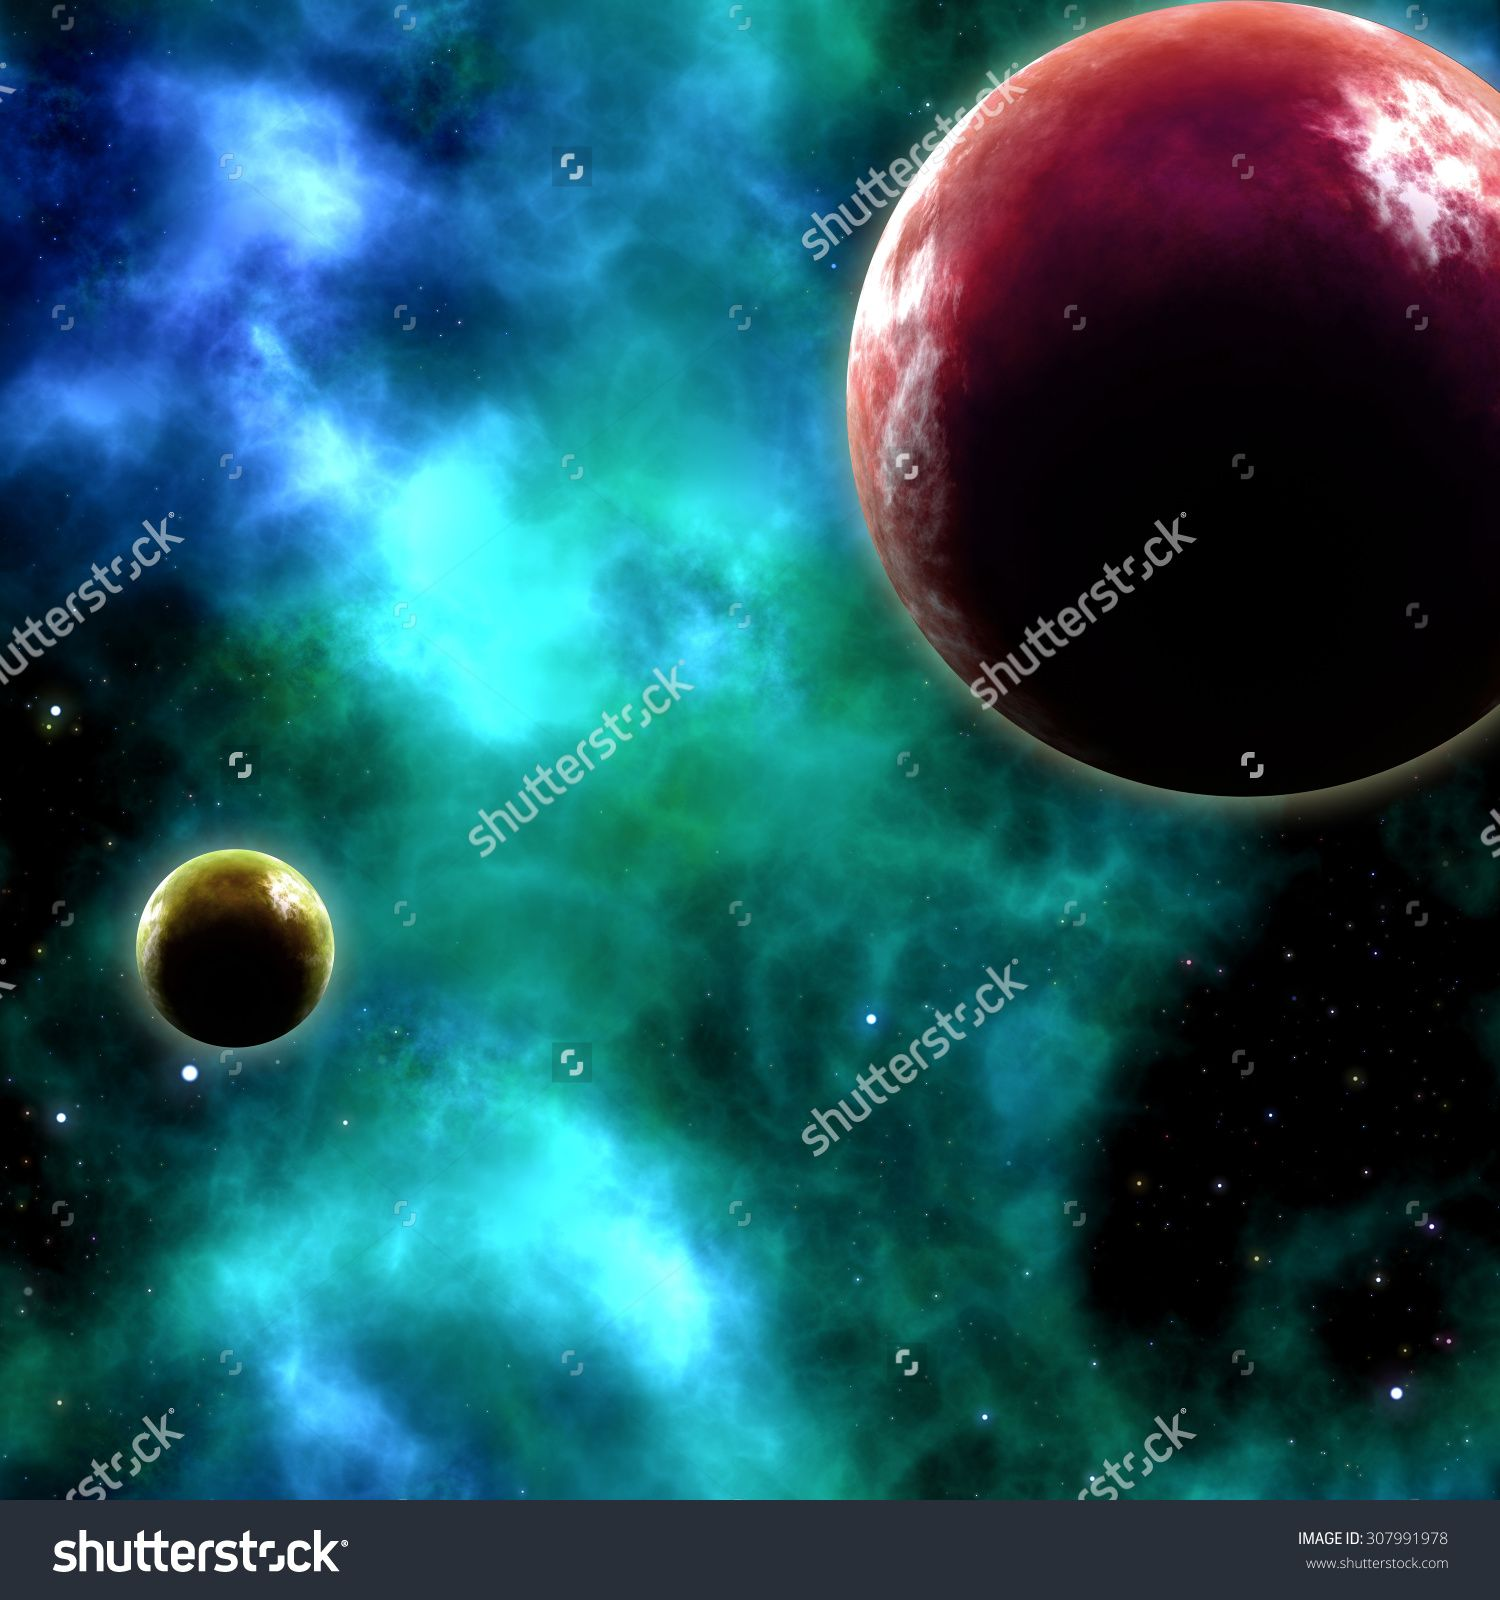 Planets and nebula in Universe